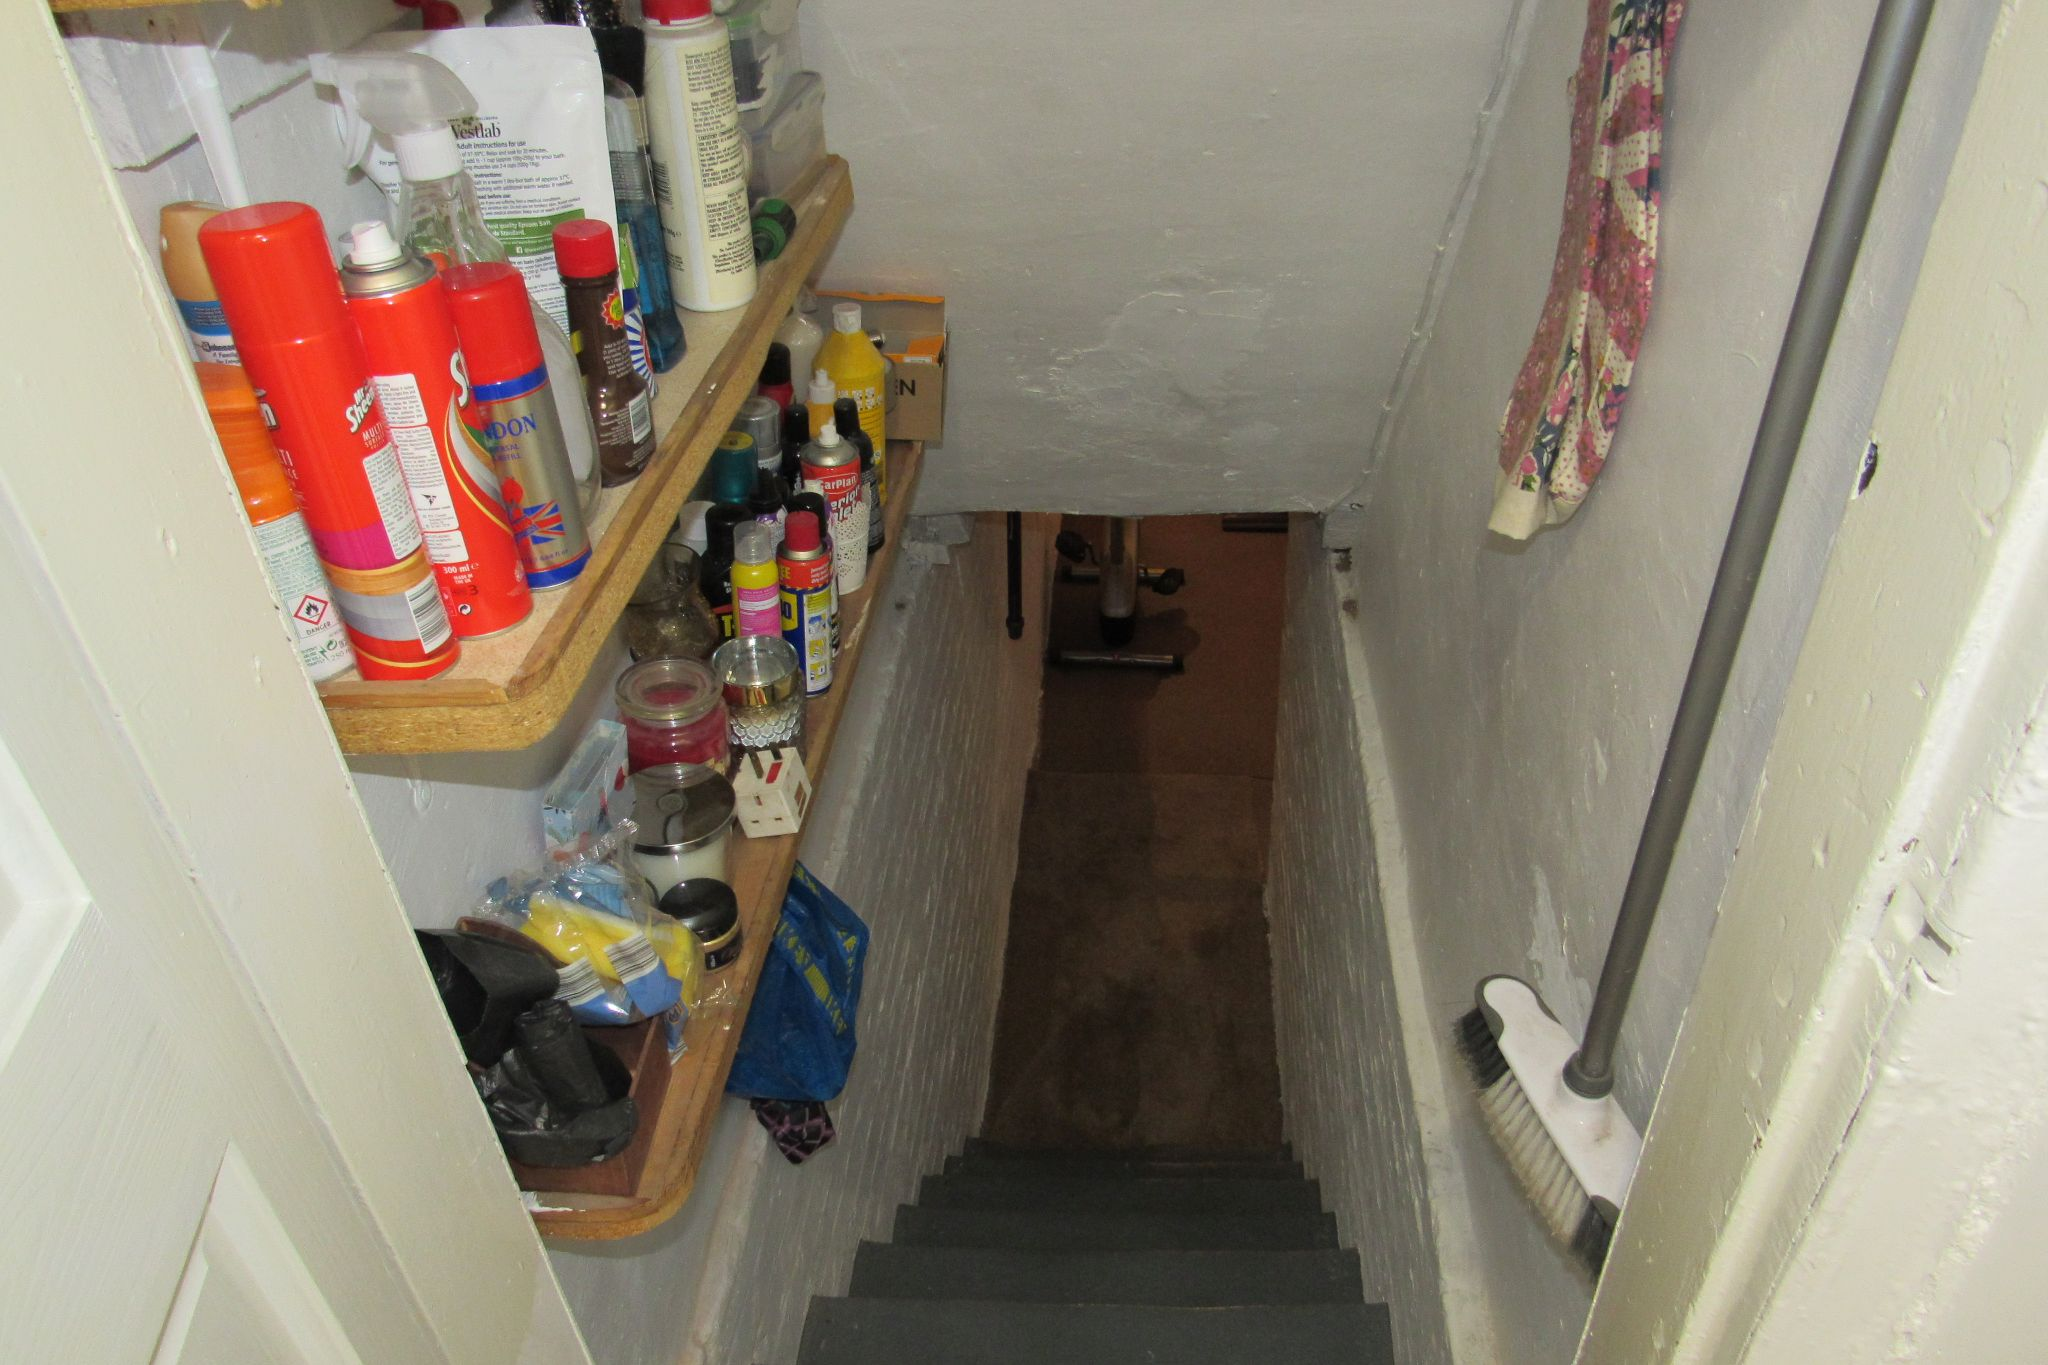 3 bedroom mid terraced house SSTC in Stockport - Photograph 15.